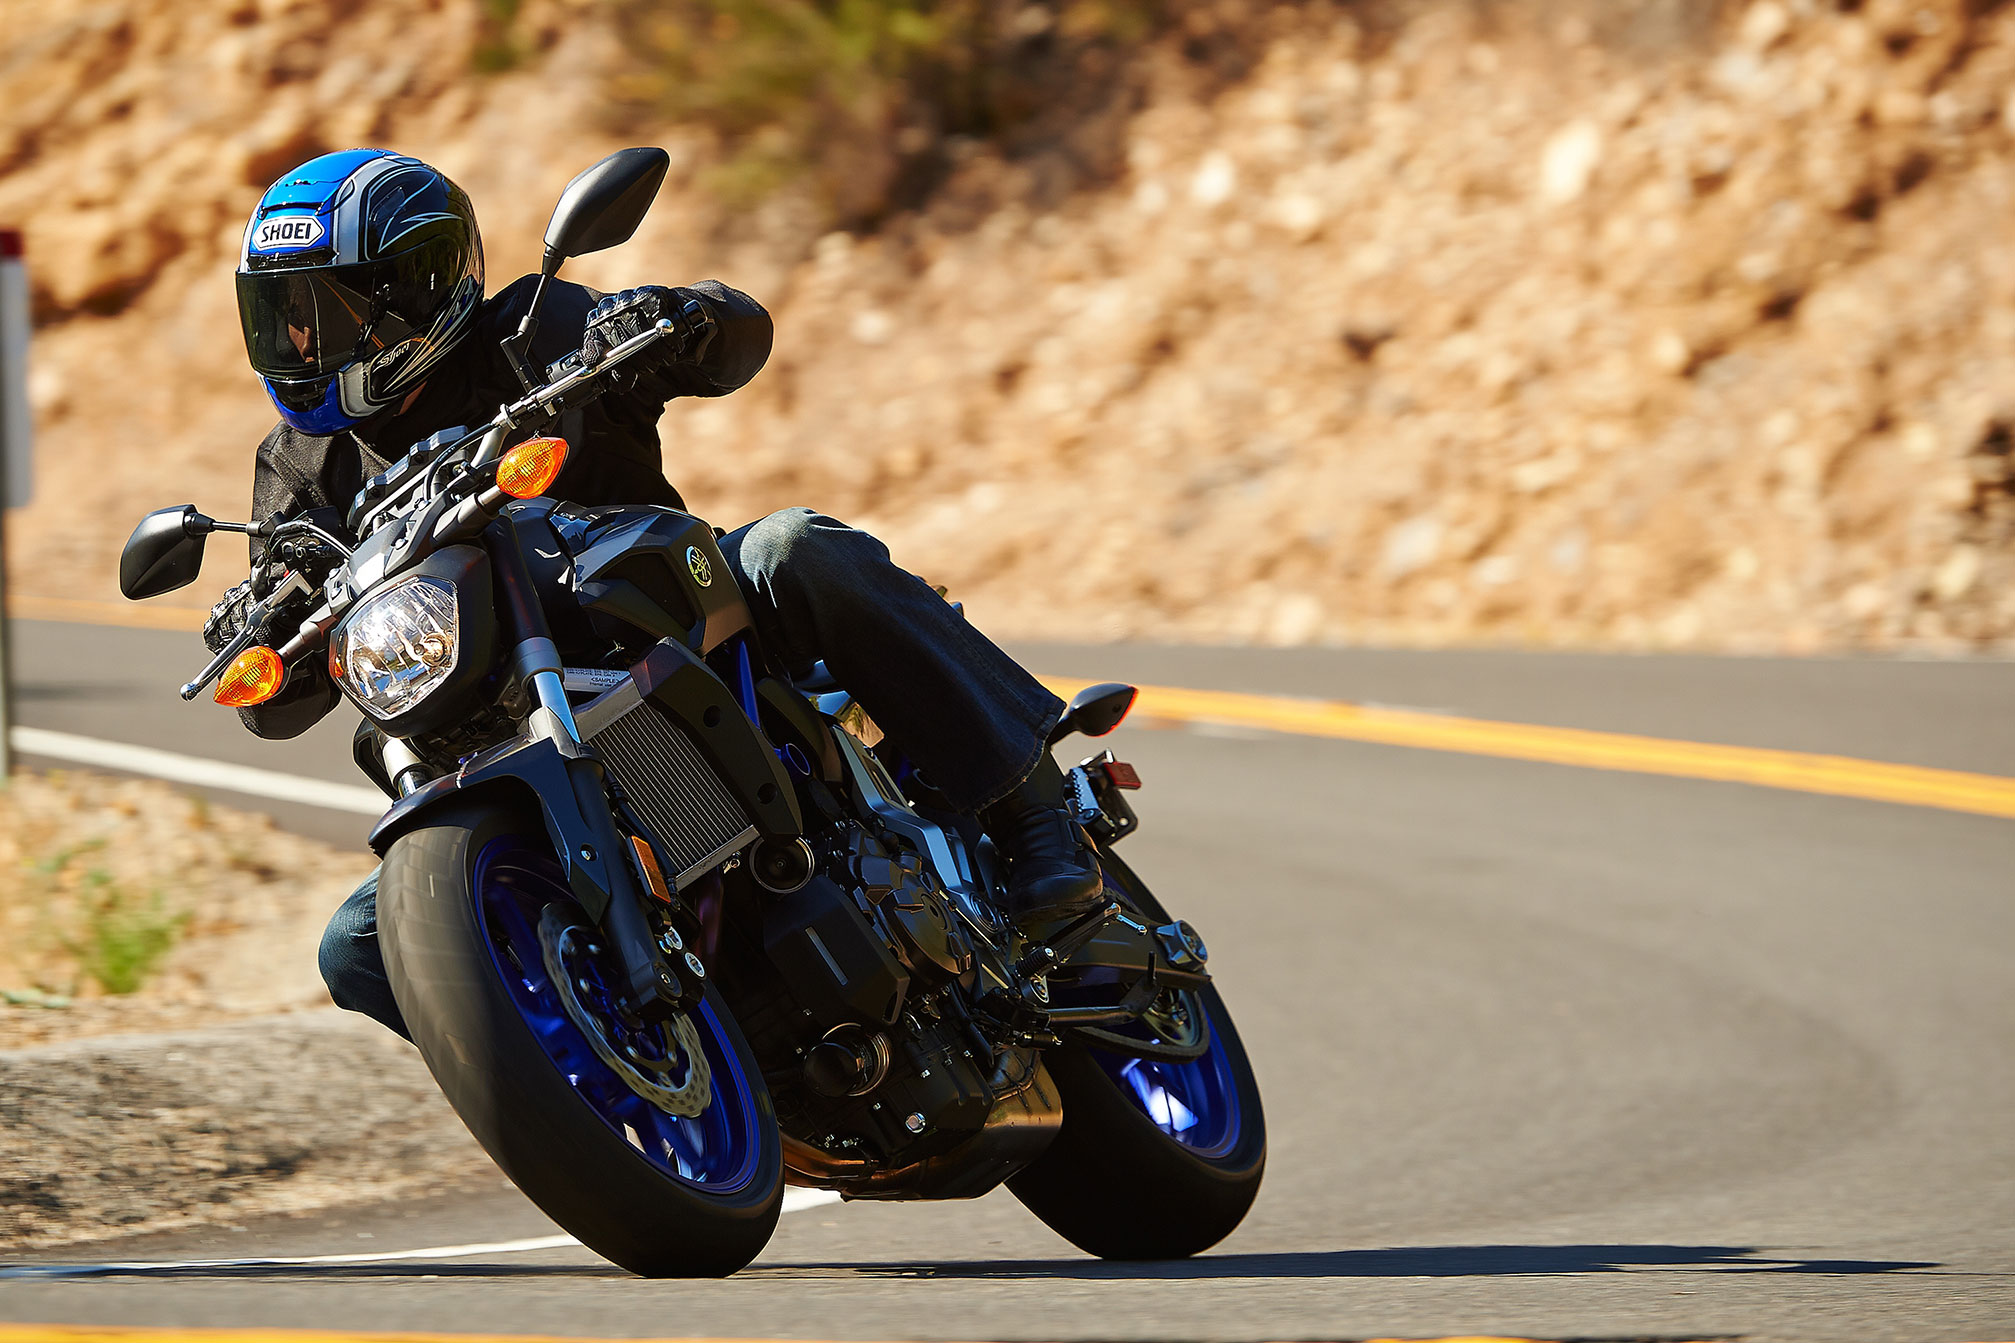 2015 Yamaha Fz 07 Review